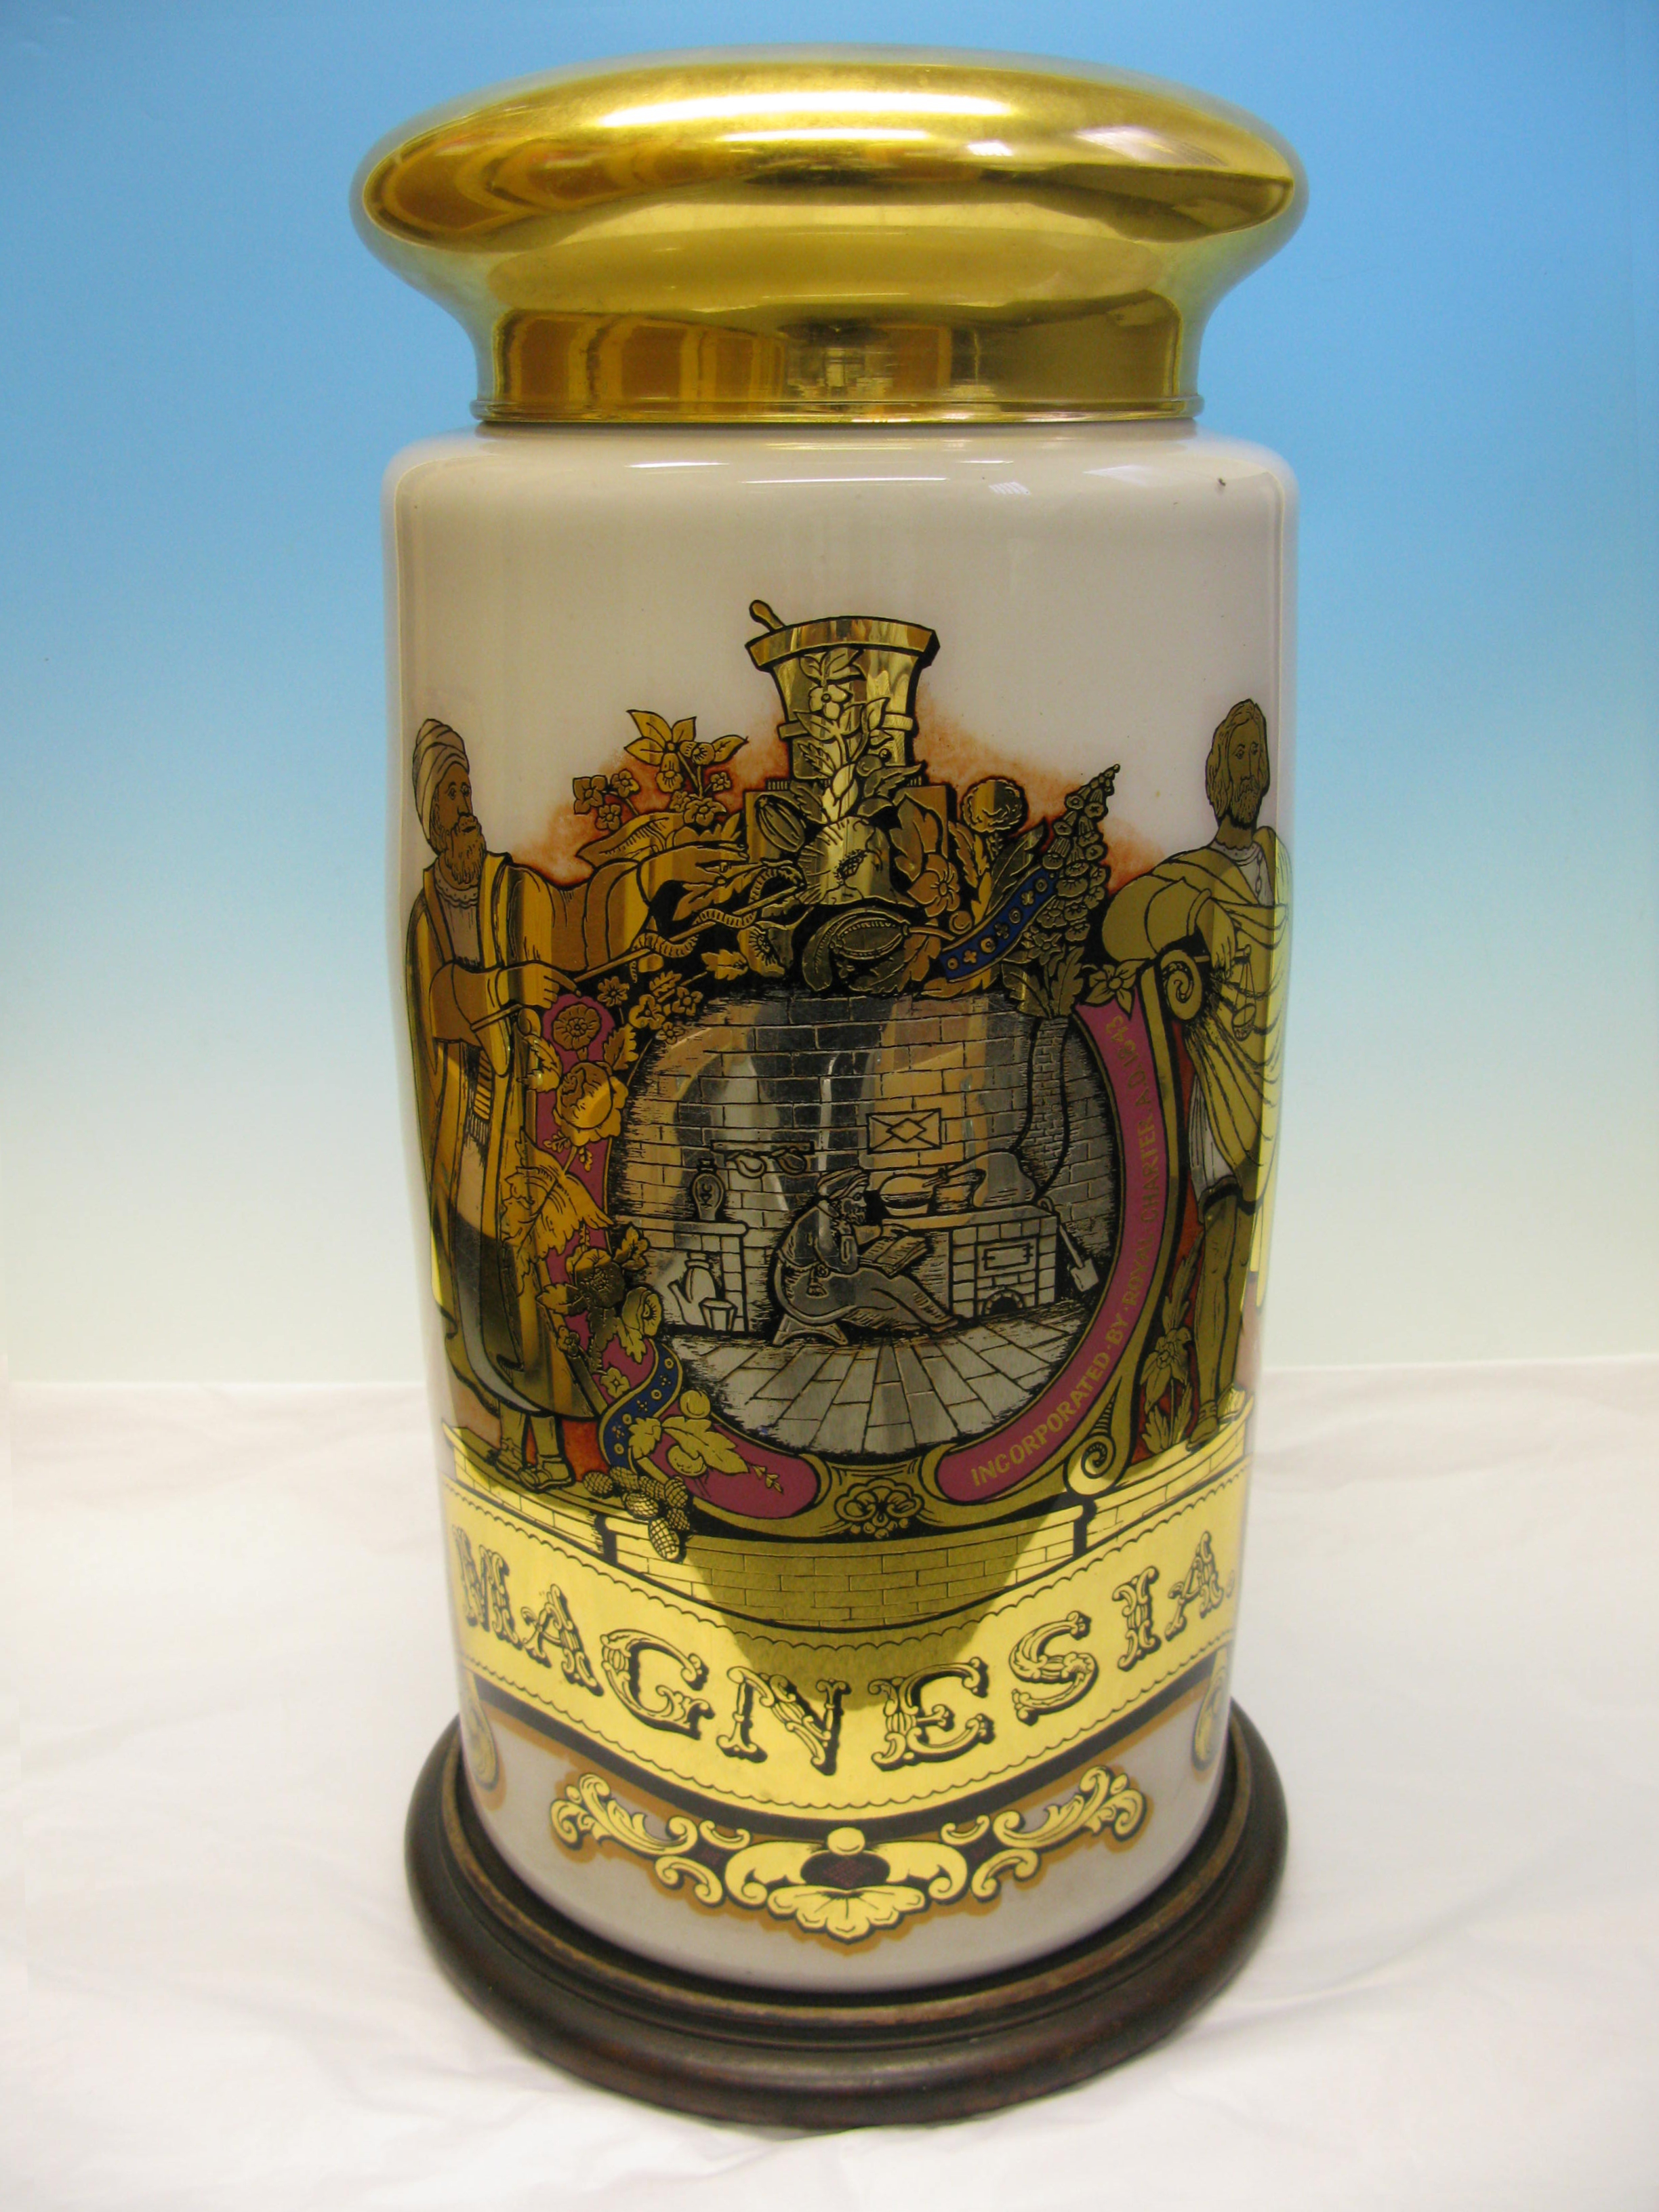 LDRPS: LSA7, 19th Century. This gold and white specie jar would have been used for decoration, rather than to store materials. The Jar is decorated with the coat of arms of the Pharmaceutical Society